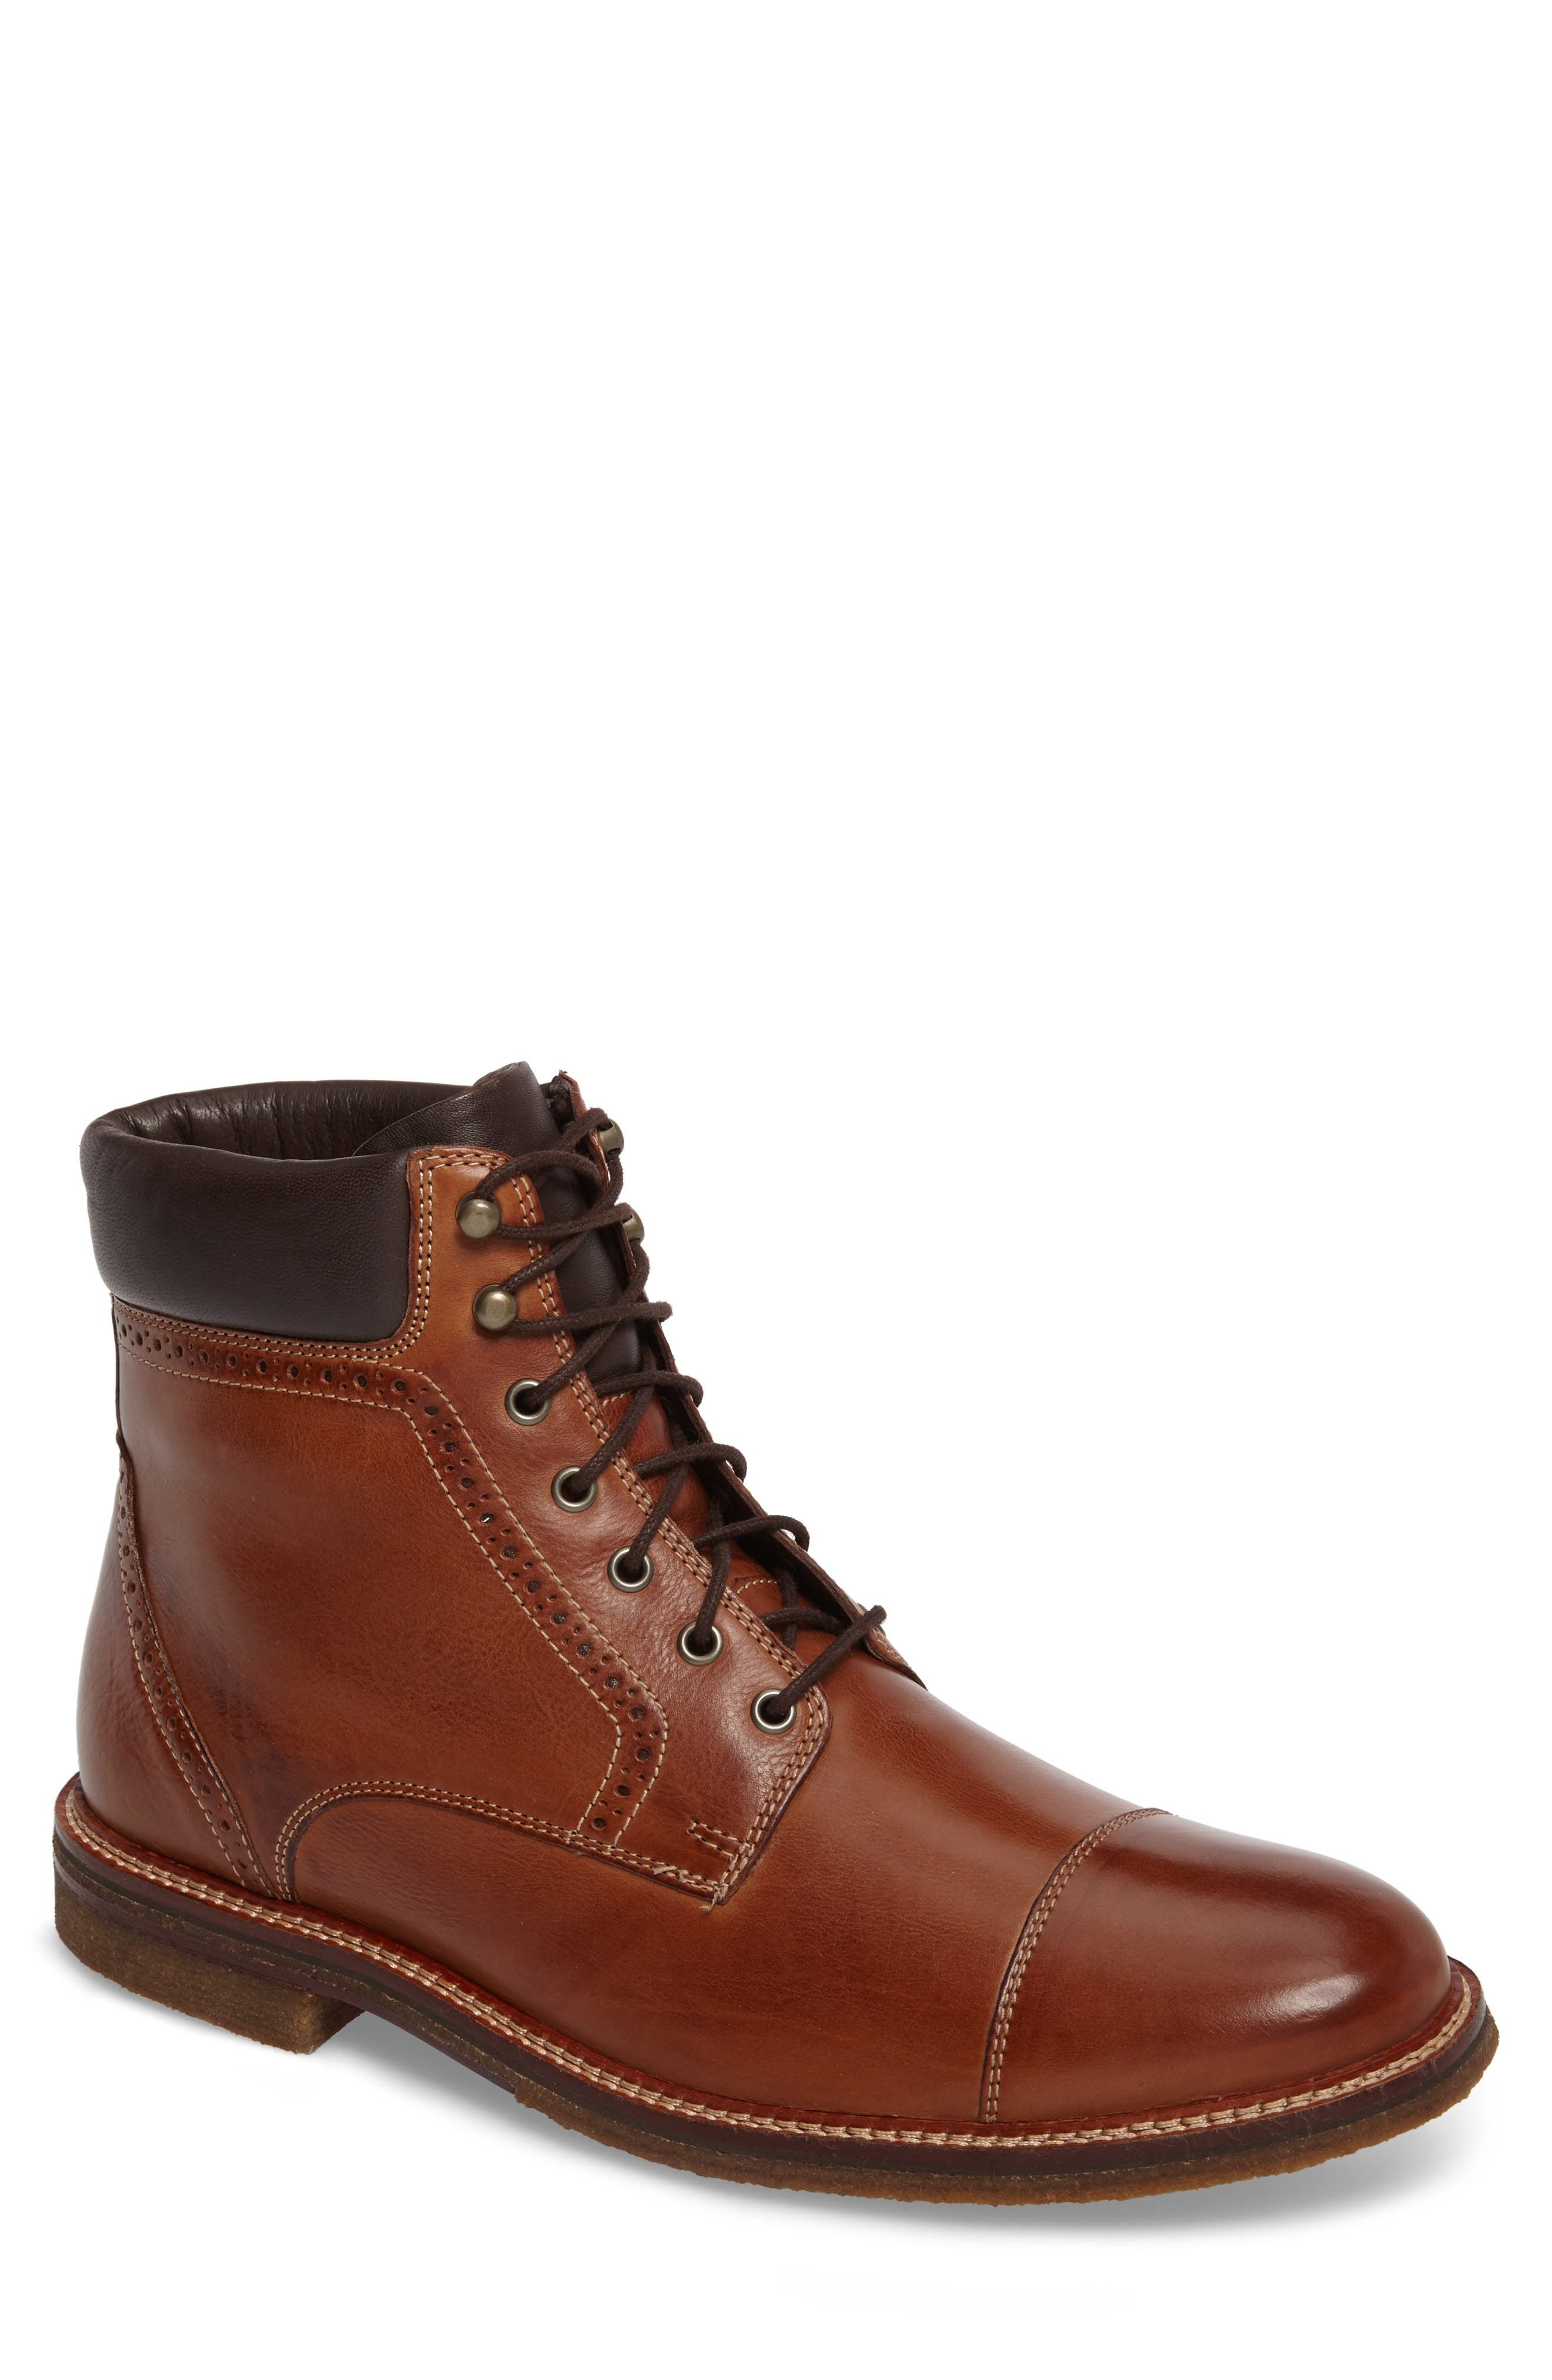 Forrester Cap Toe Boot,                         Main,                         color, Tan Leather